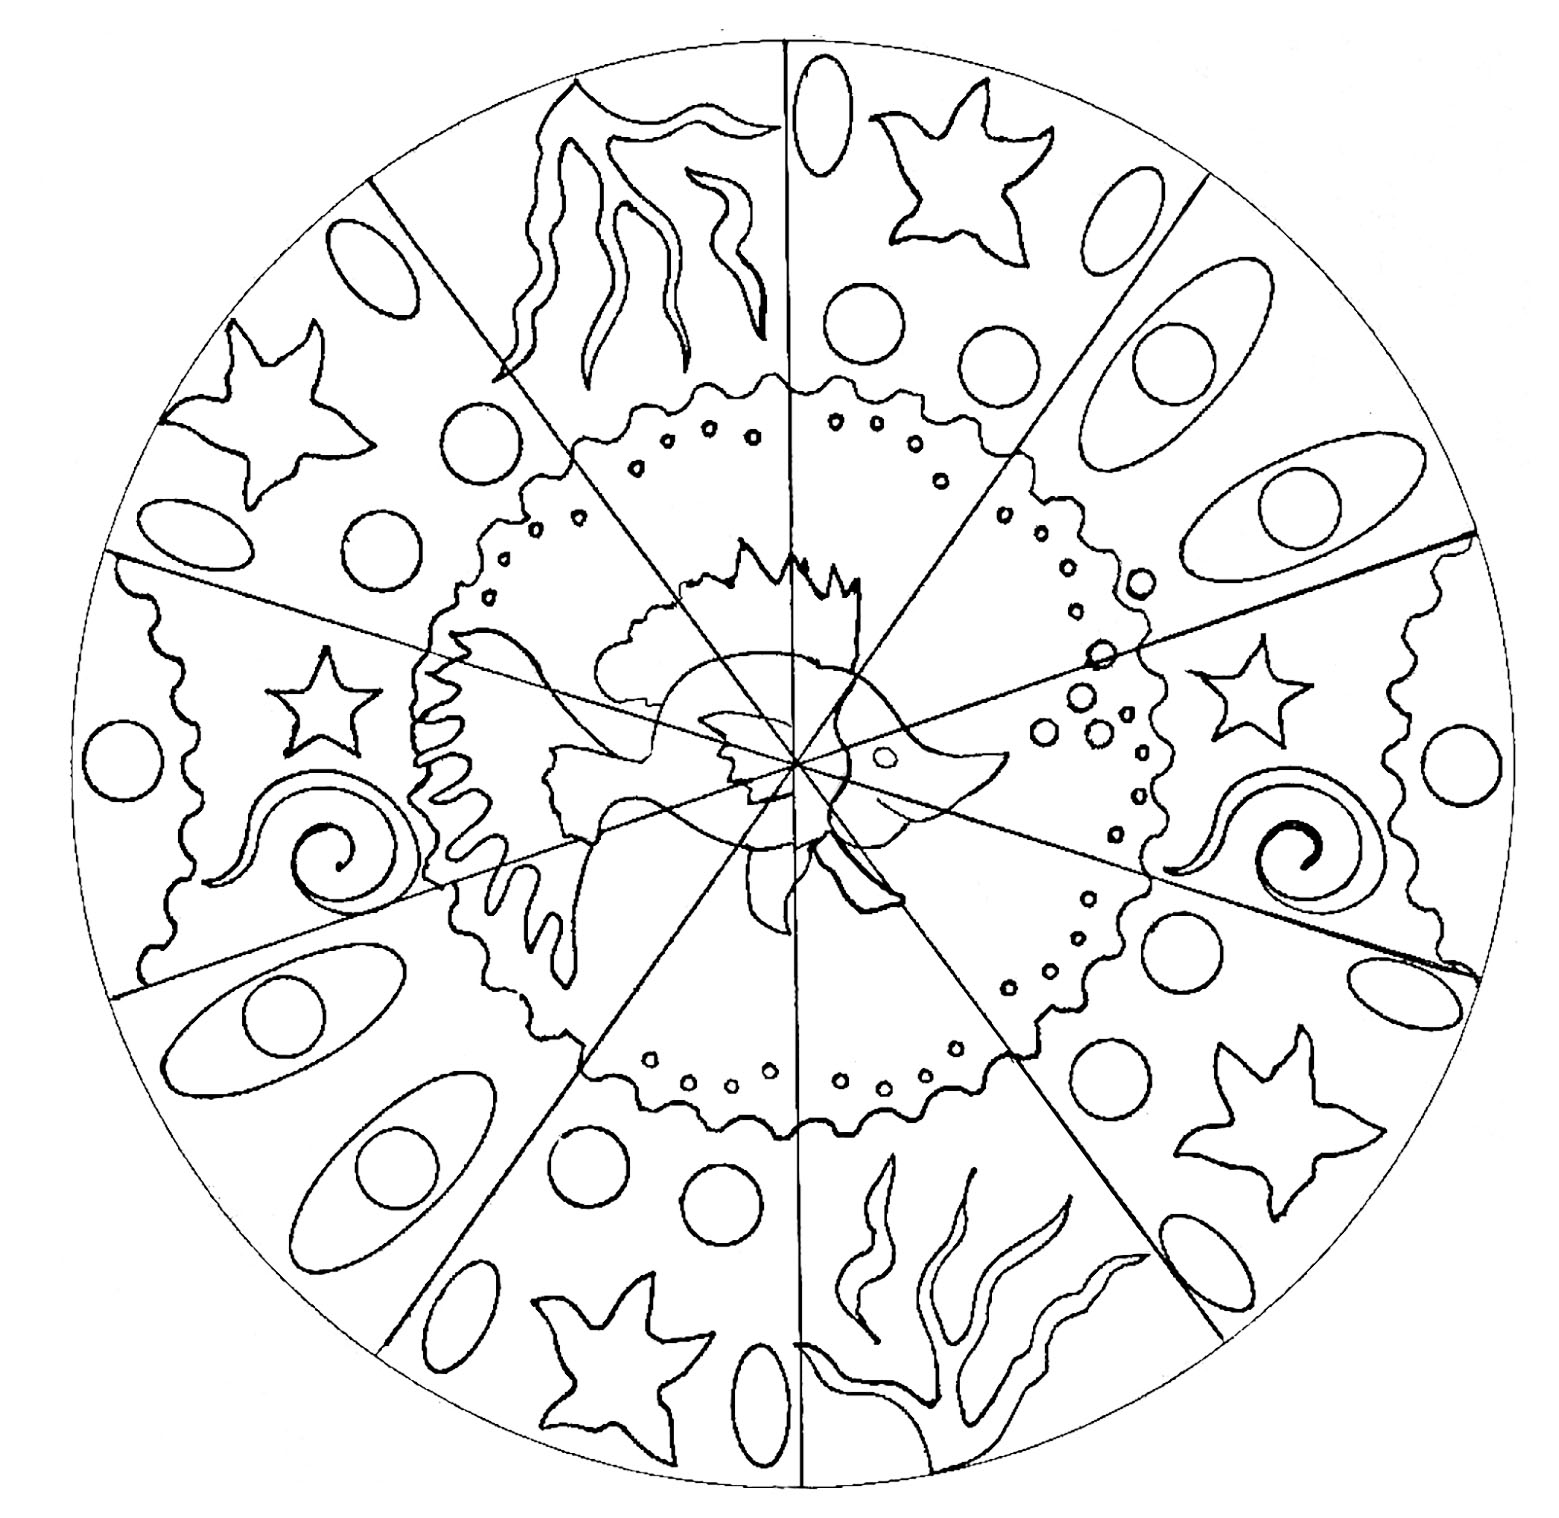 coloring page adult fish mandala free to print - Fish Coloring Pages For Adults